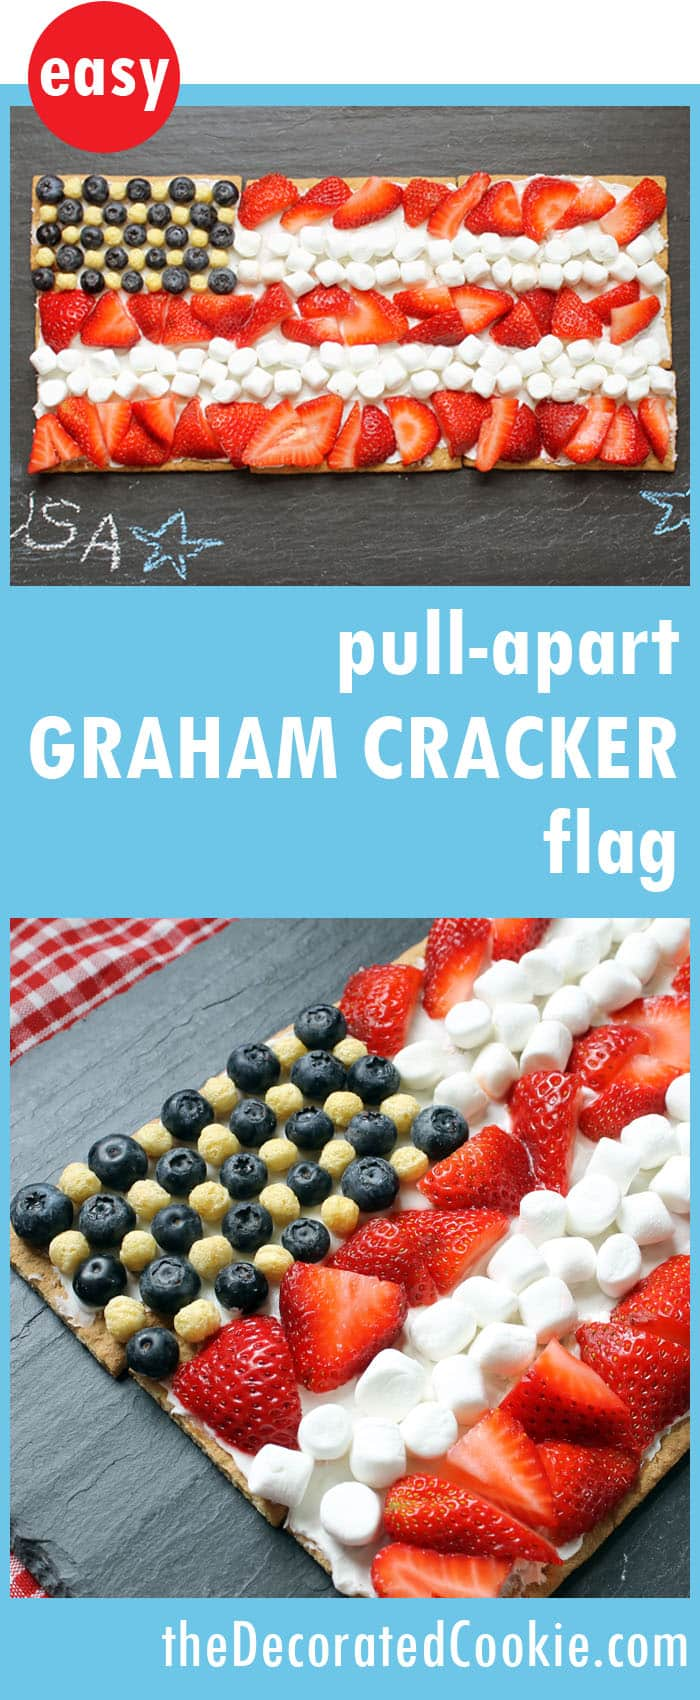 easy, no-bake, pull-apart graham cracker flag dessert -- Memorial Day dessert, 4th of July dessert